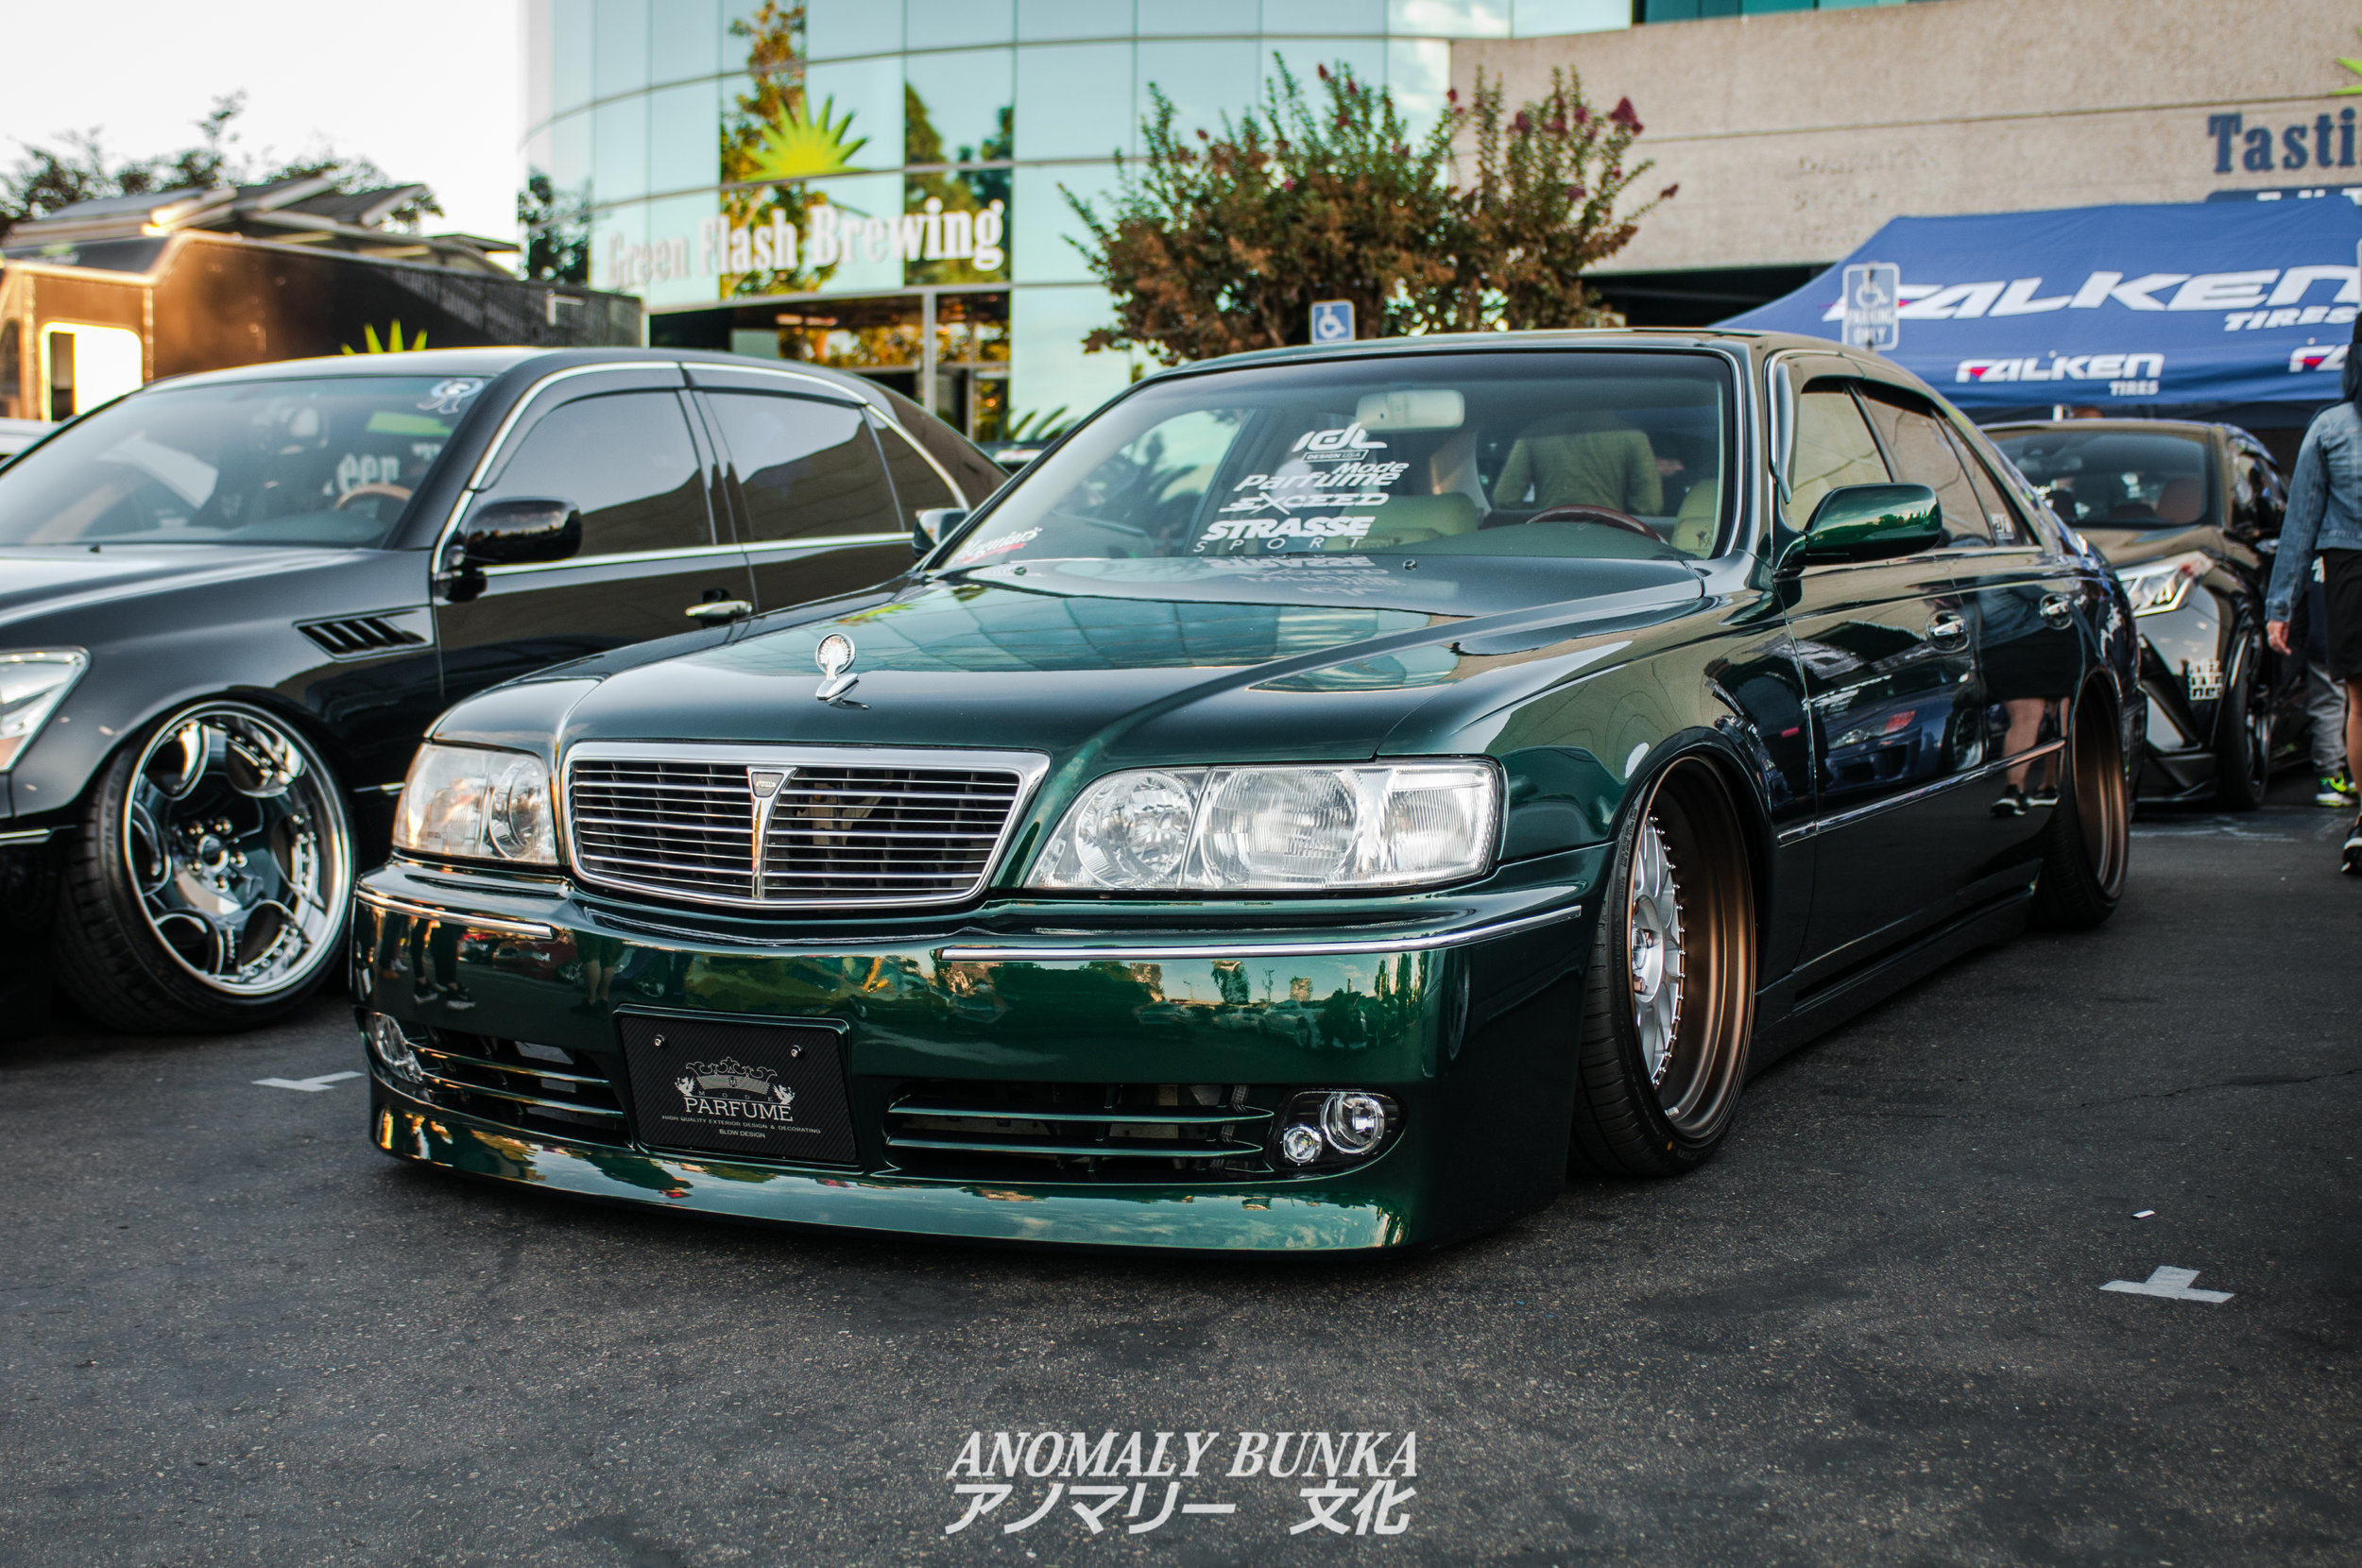 Speaking of Joey, it was nice to see his Q45 cleaned up and not in his shop, haha